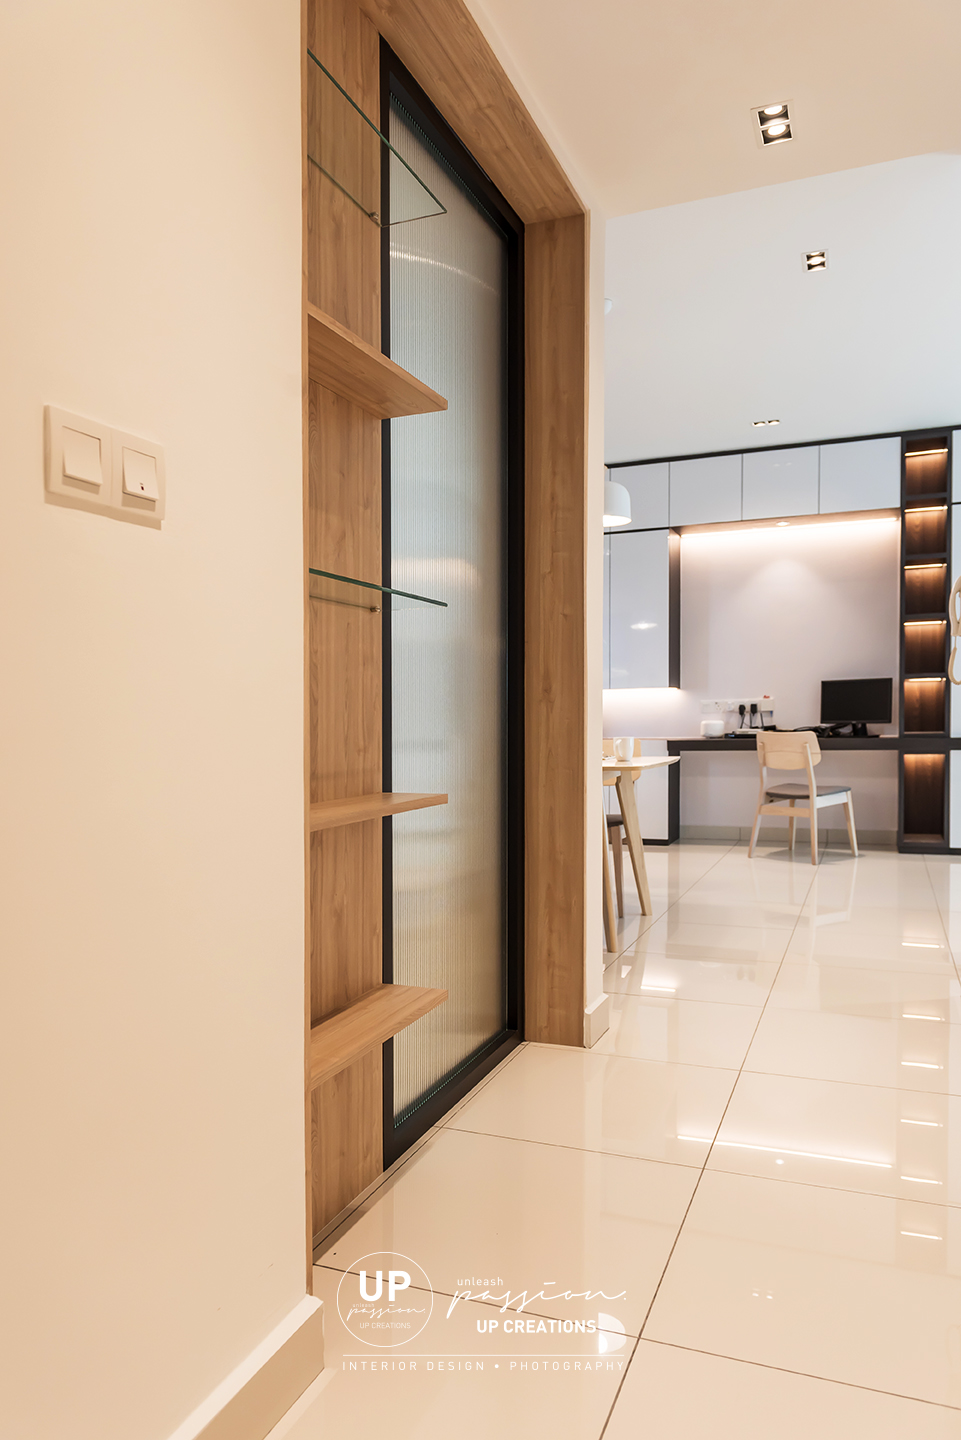 trinity aquata condo corridor with reeded glass panel and wood & glass shelf for more natural light for corridor area